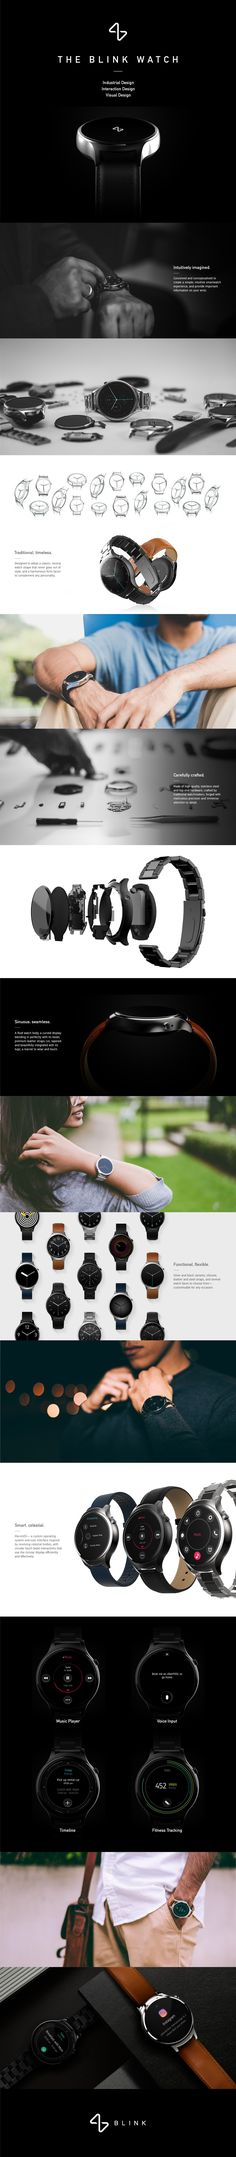 Blink Watch on Behance